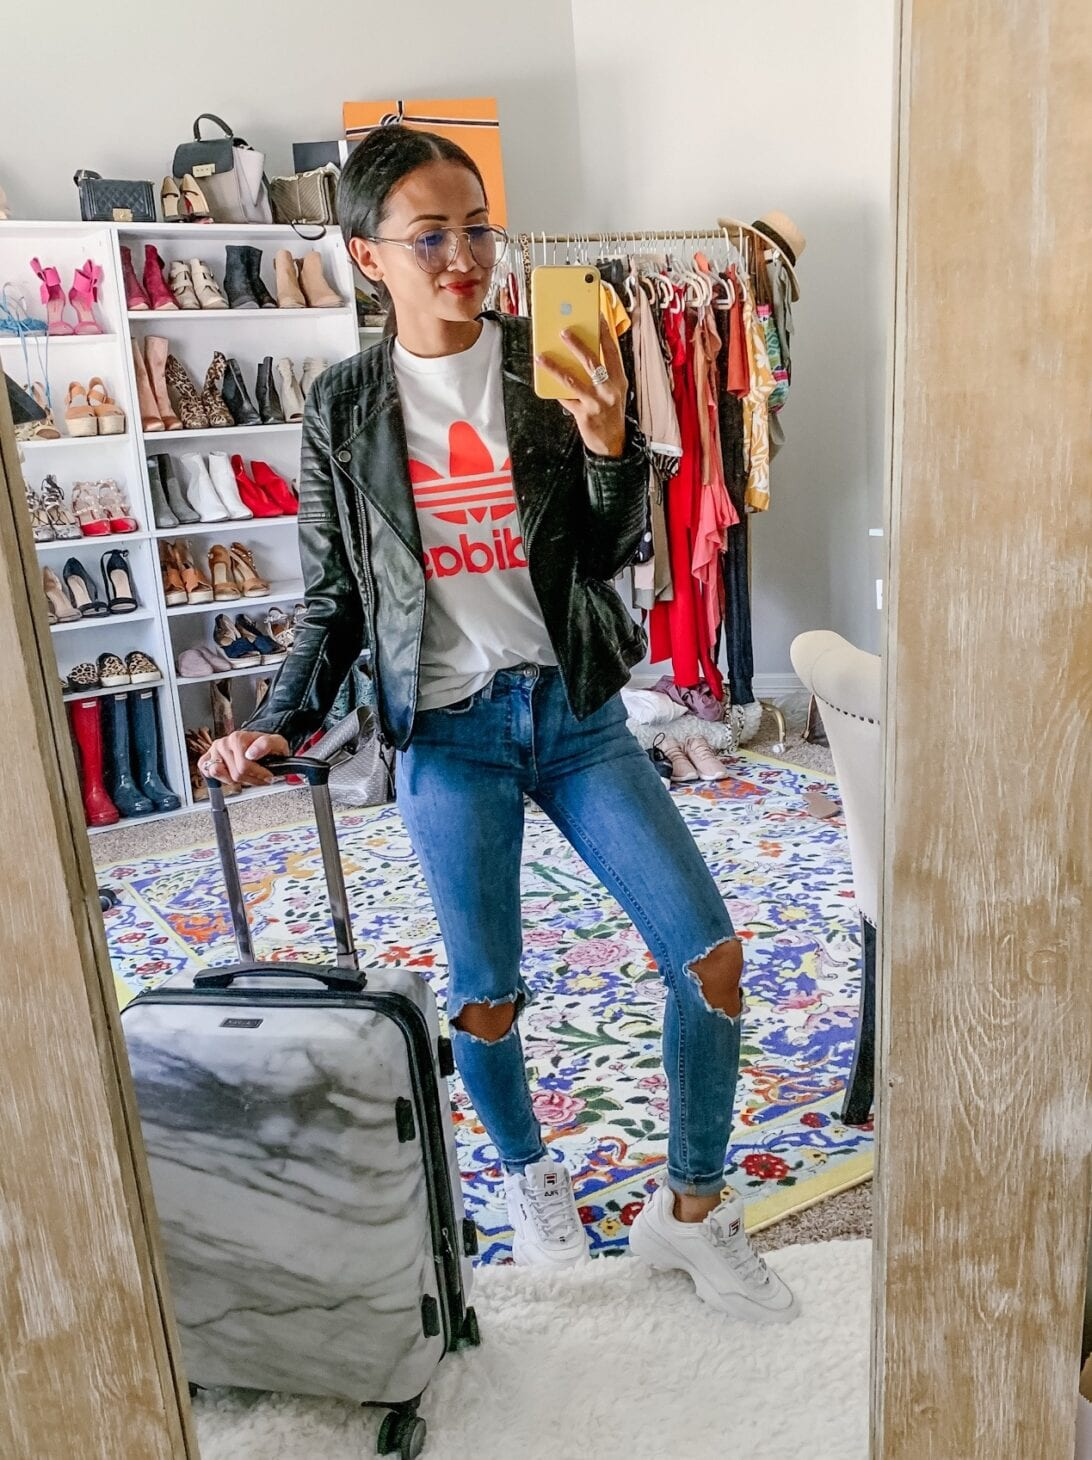 ADIDAS SHIRT, CASUAL STYLE, BKIER JACKET, TOPSHOP FAUX LEATHER JACKET, BLUE LIGHT GLASSES, FREE PEOPLE JEANS, ADIDAS SHOES, CALPAK LUGGAGE